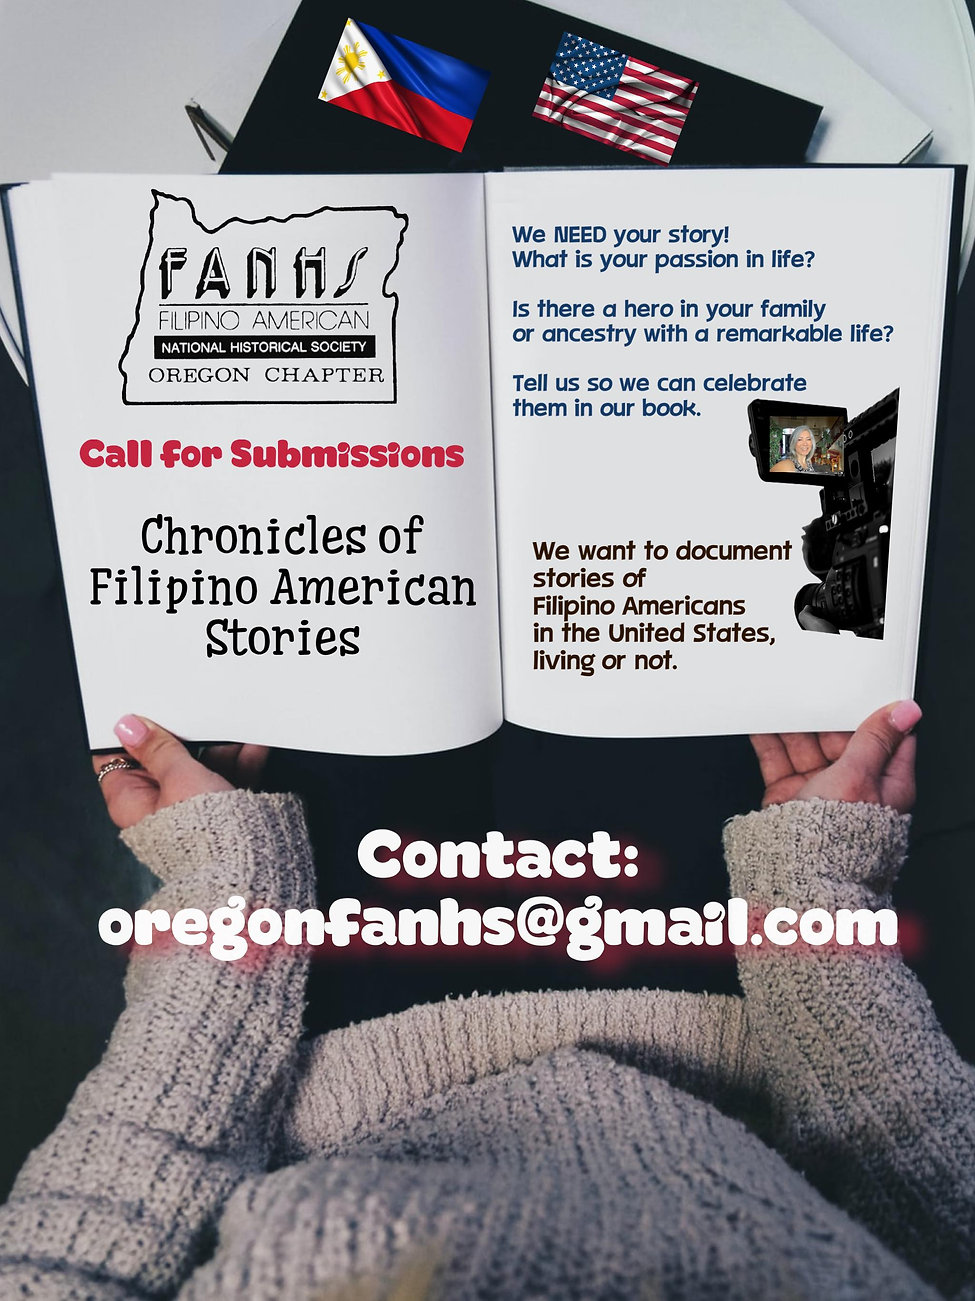 FANHS-OR Book Project flyer 2021.jpg